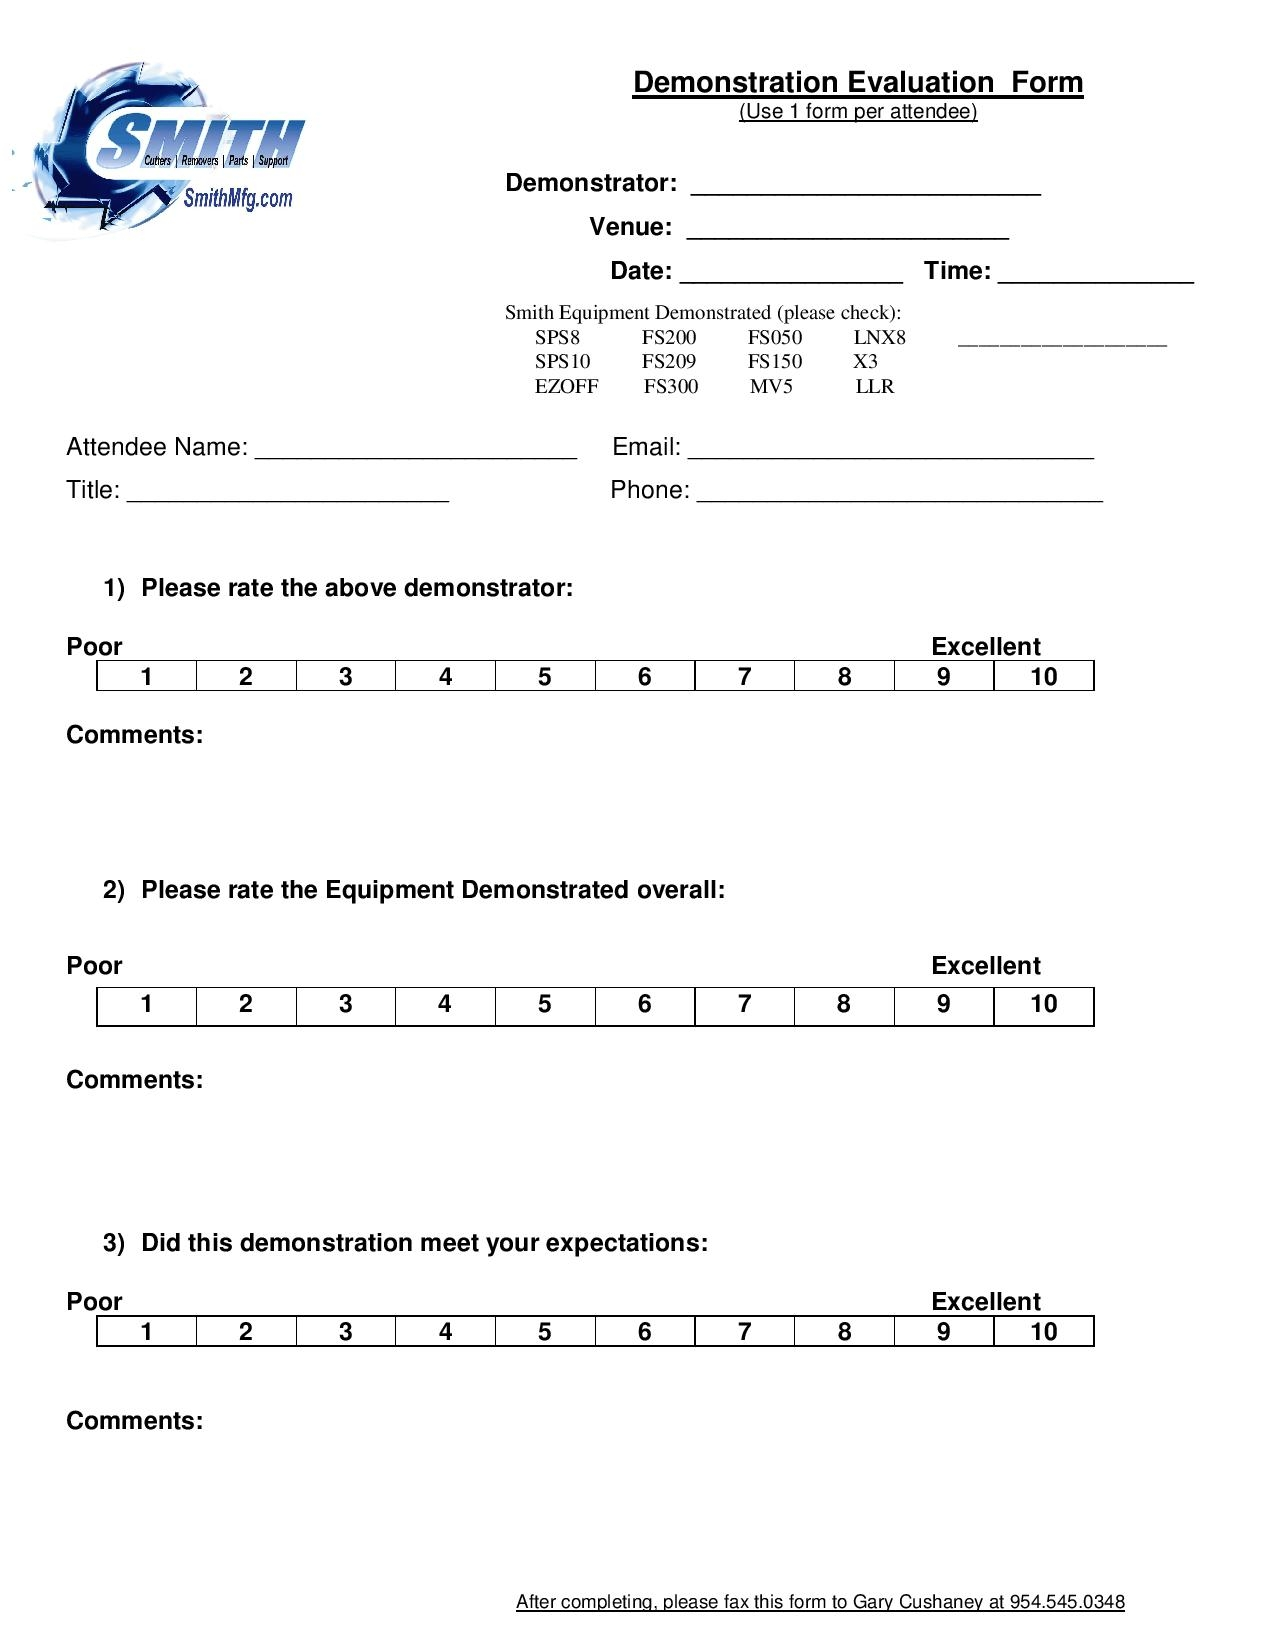 demoevaluationform page 001